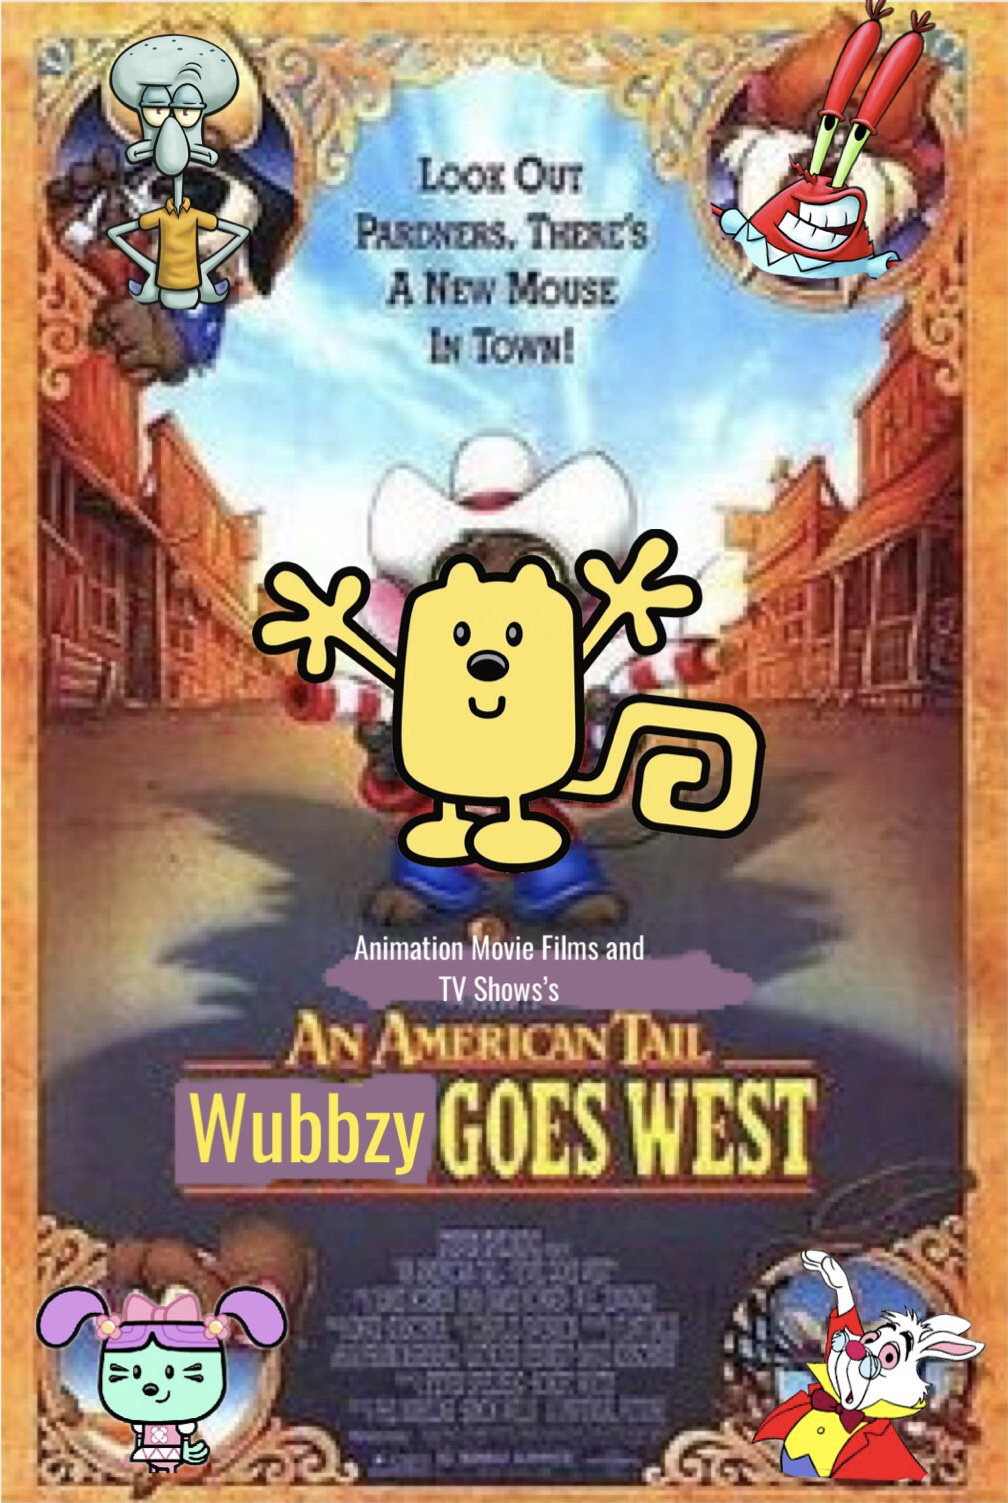 An American Tail 2: Wubbzy Goes West (Animation Movie Films and TV Shows Style)